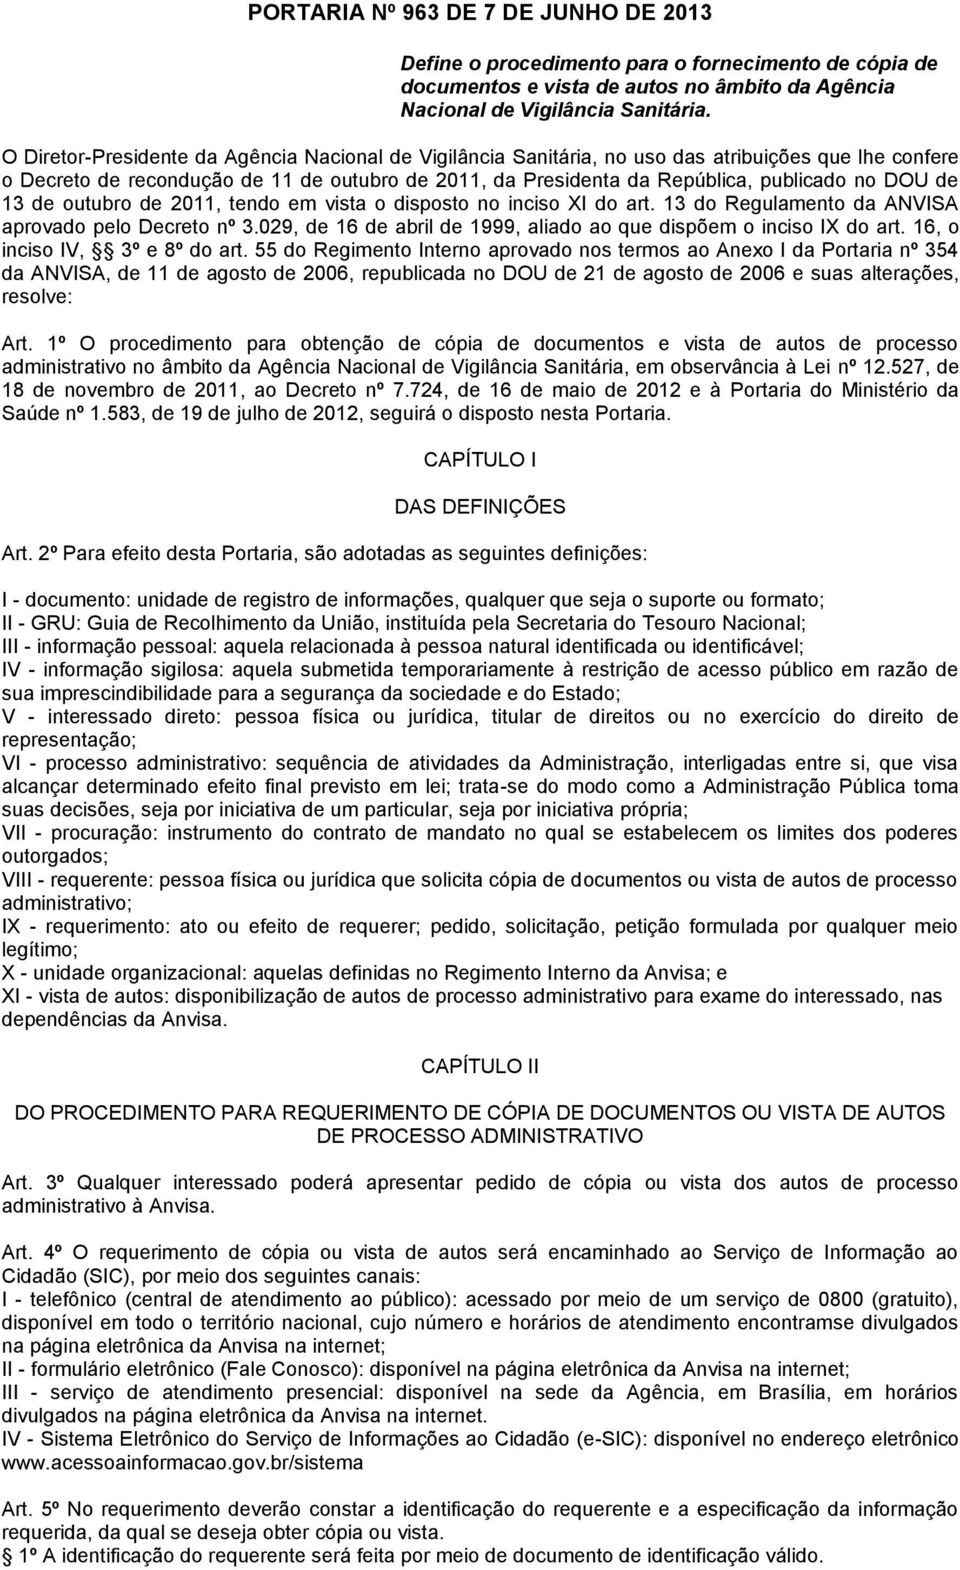 de 13 de outubro de 2011, tendo em vista o disposto no inciso XI do art. 13 do Regulamento da ANVISA aprovado pelo Decreto nº 3.029, de 16 de abril de 1999, aliado ao que dispõem o inciso IX do art.